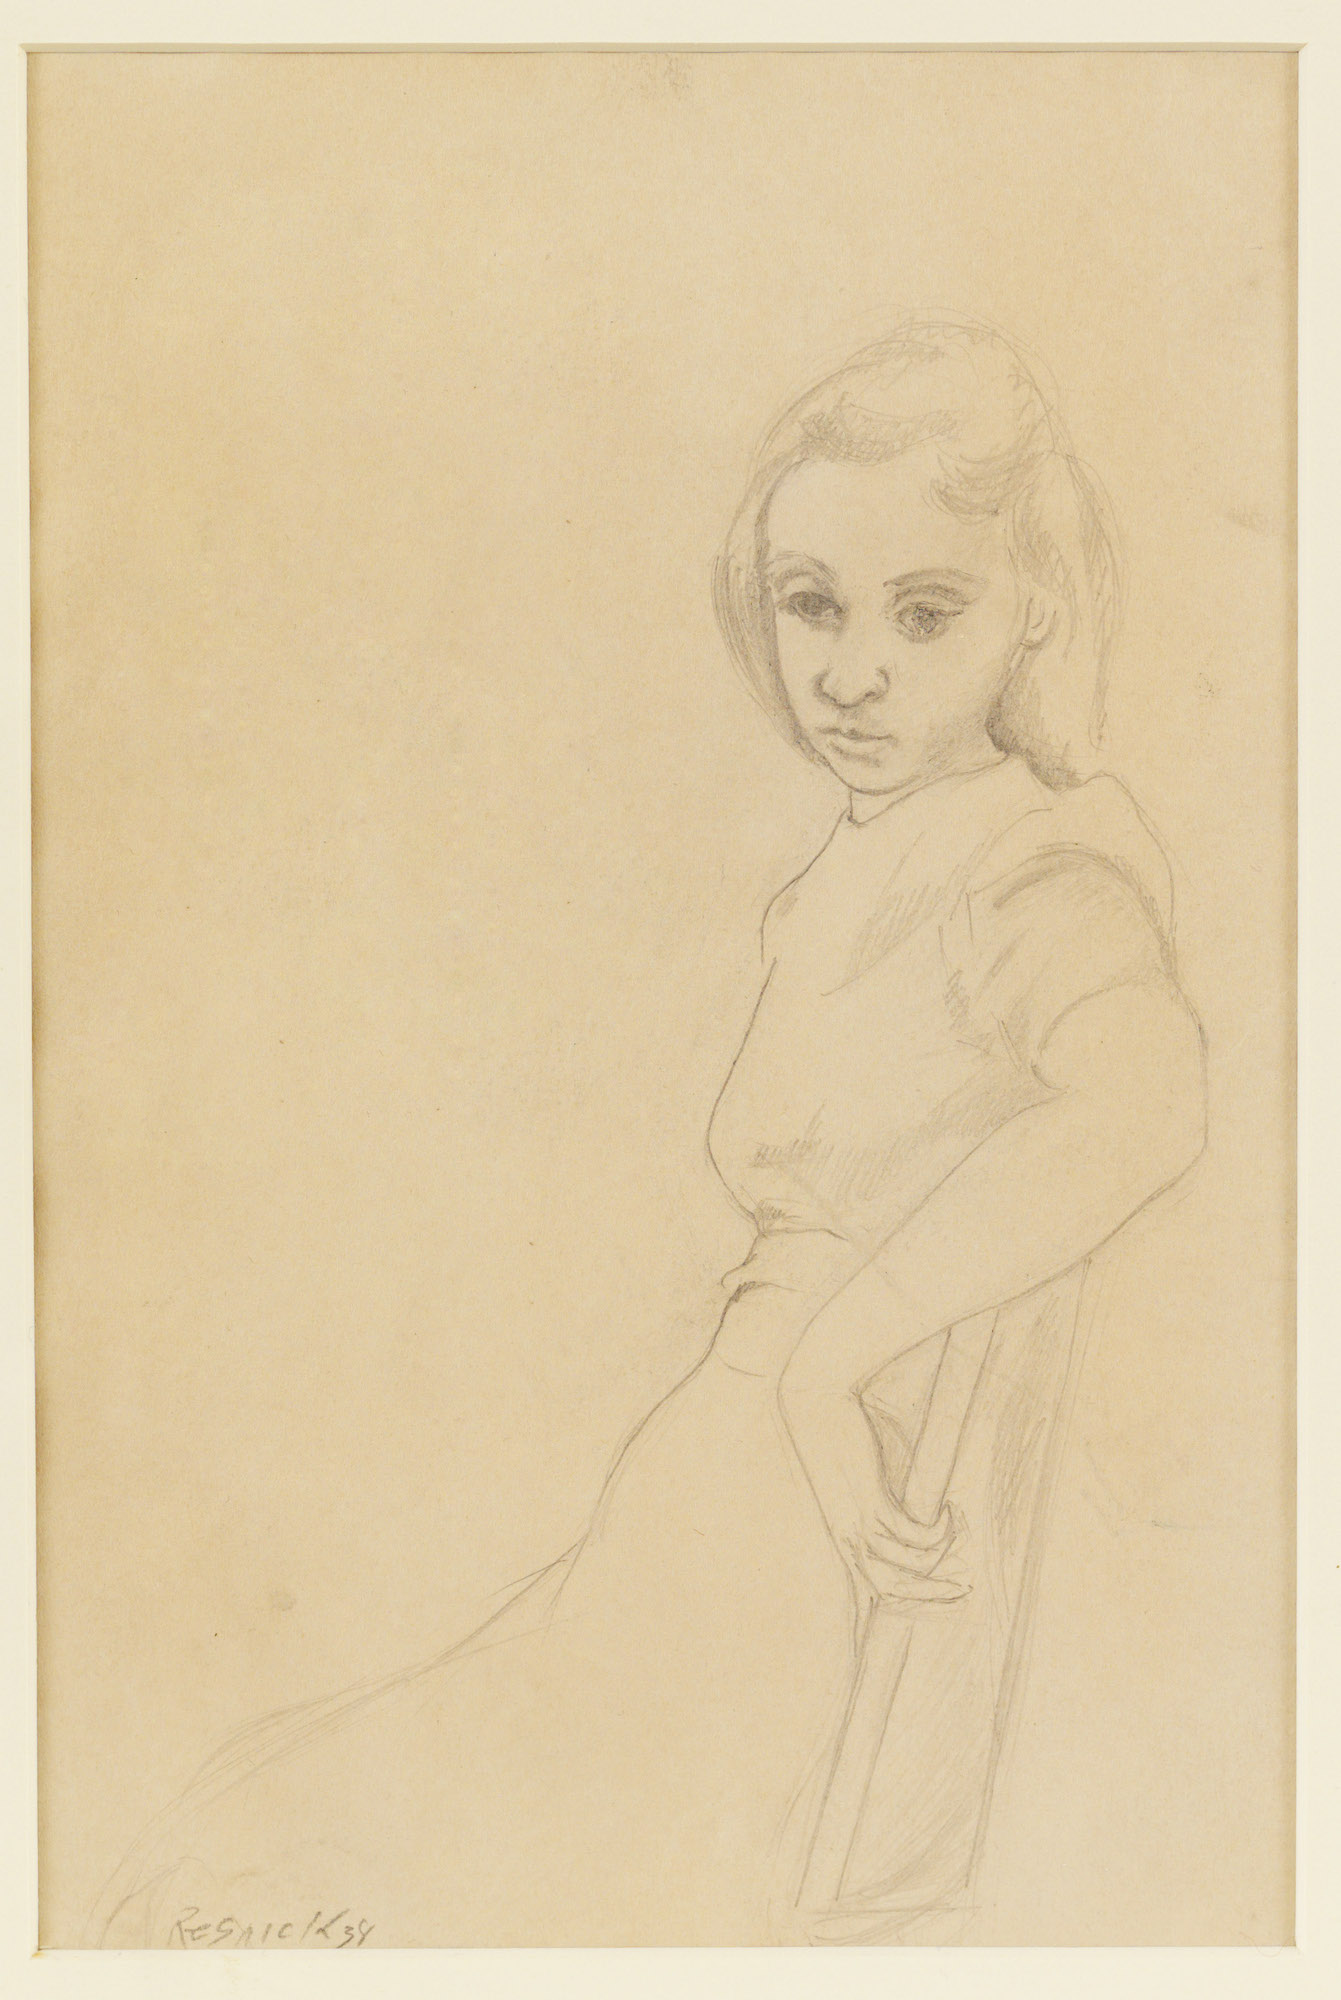 Milton Resnick  Untitled (Portrait) , 1938 Graphite on paper 9 x 6 inches